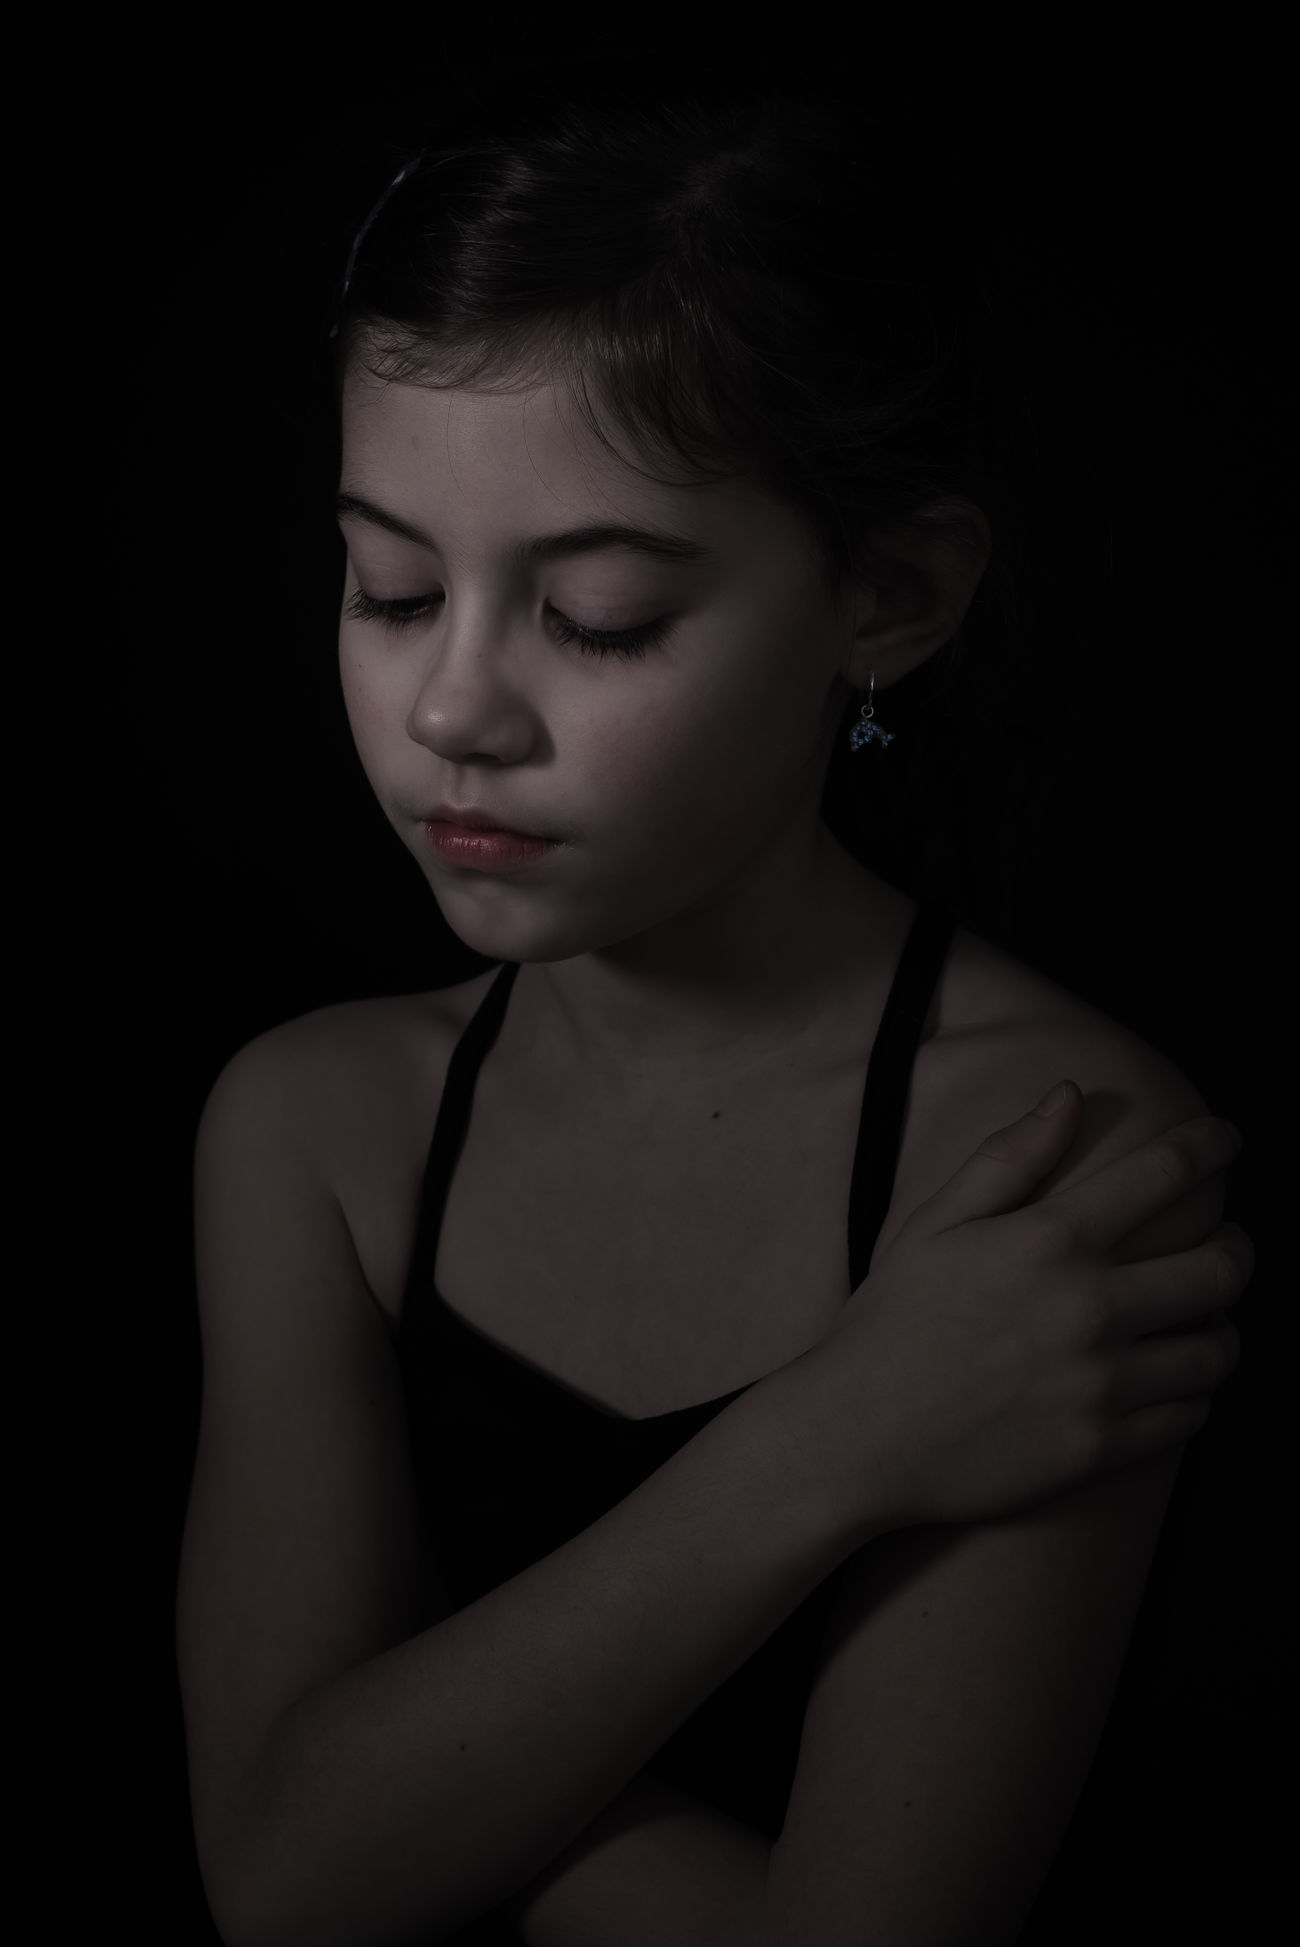 Girl Rembrandt Light Softness Fragility Nikonphotography Photographer Josienvangeffen